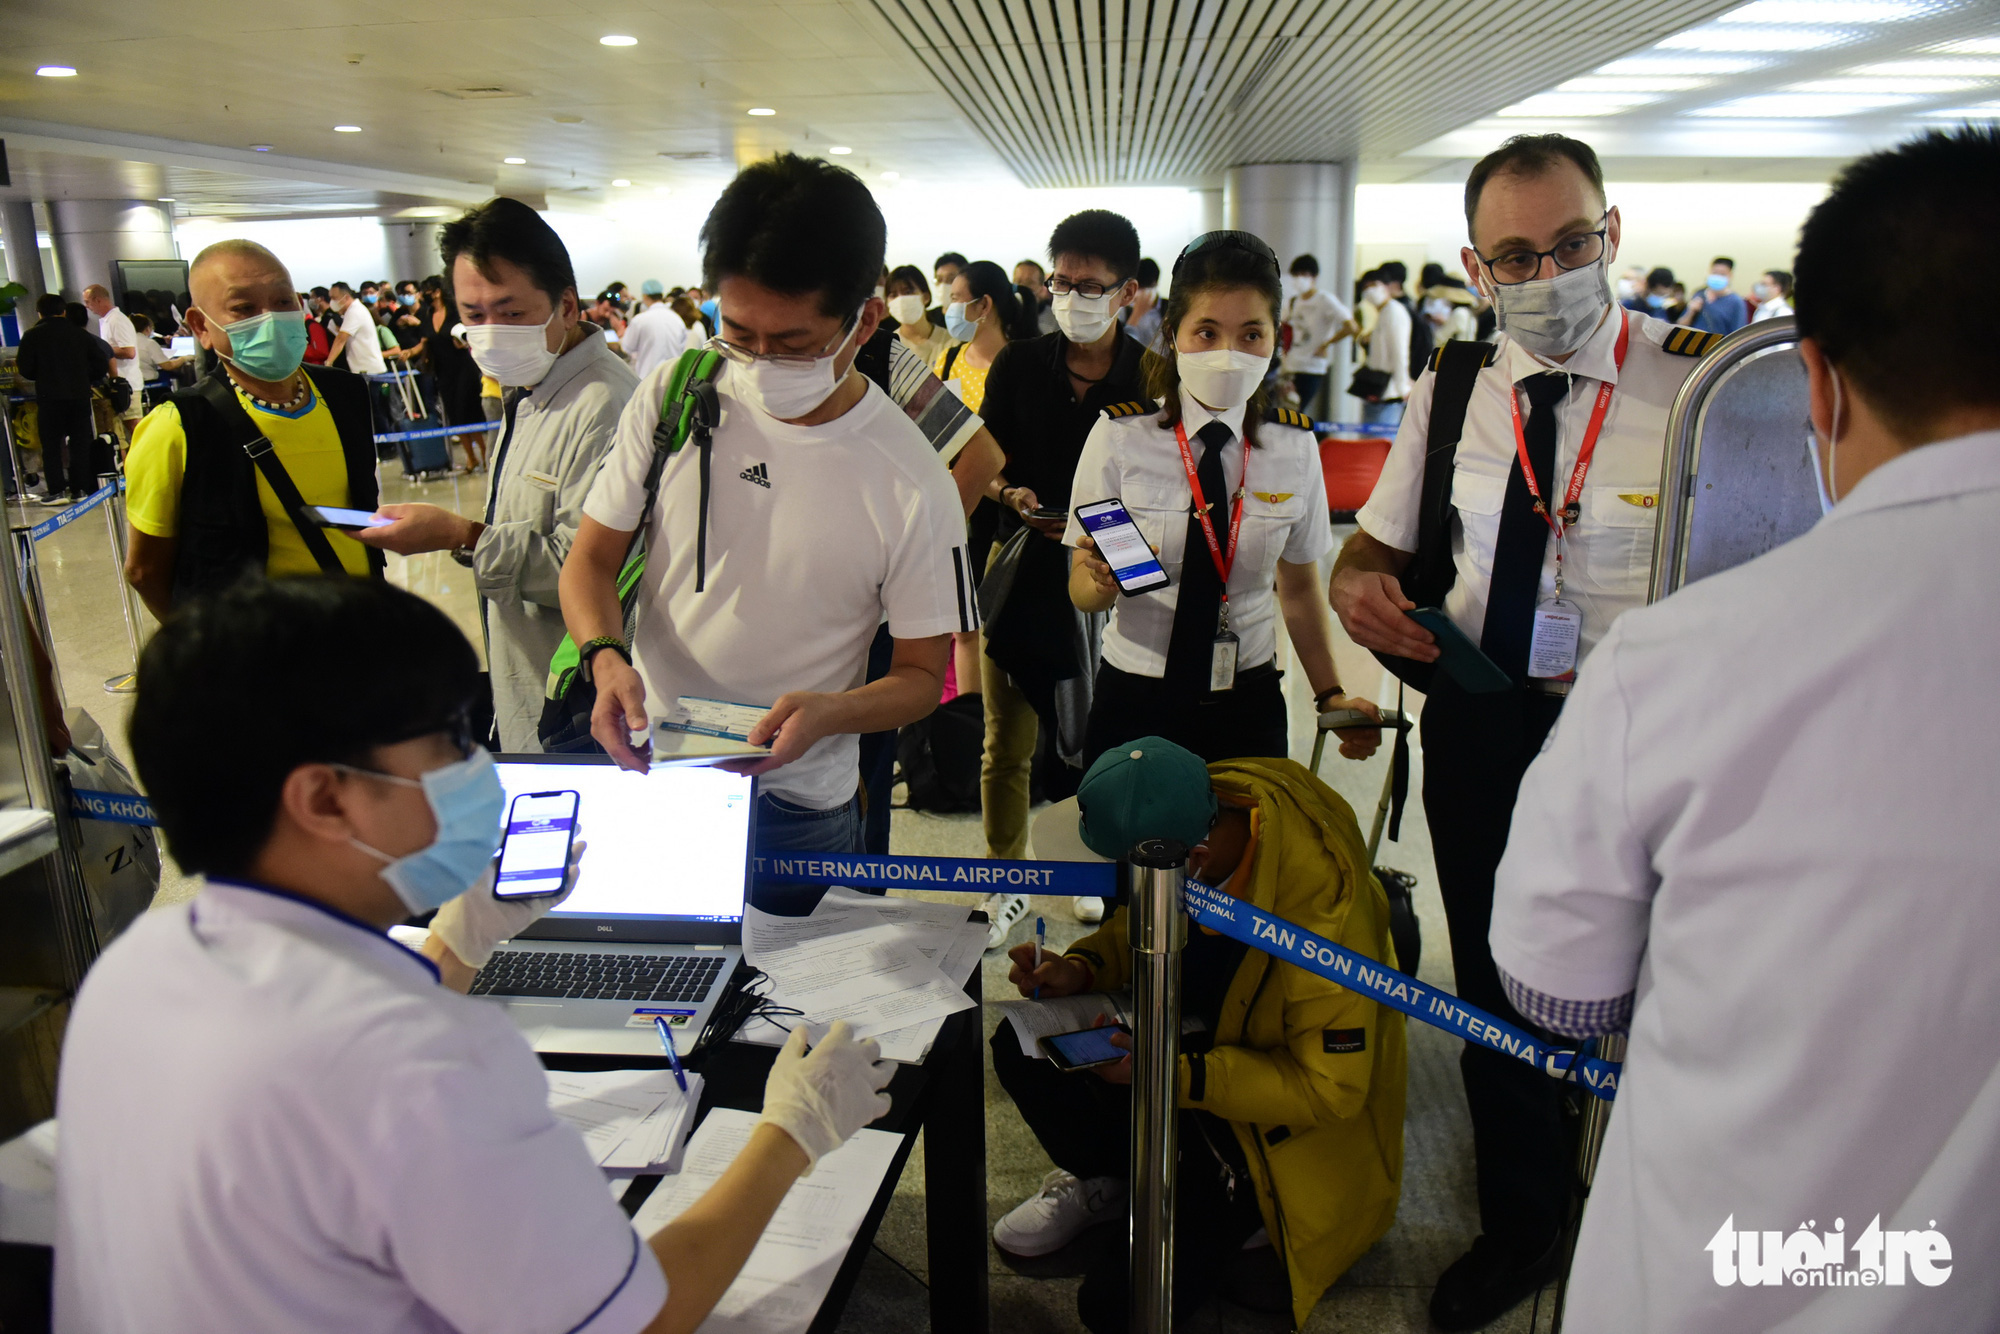 A female pilot shows a completed online health declaration form to a quarantine officer at Tan Son Nhat International Airport in Ho Chi Minh City, Vietnam, March 9, 2020. Photo: Quang Dinh / Tuoi Tre